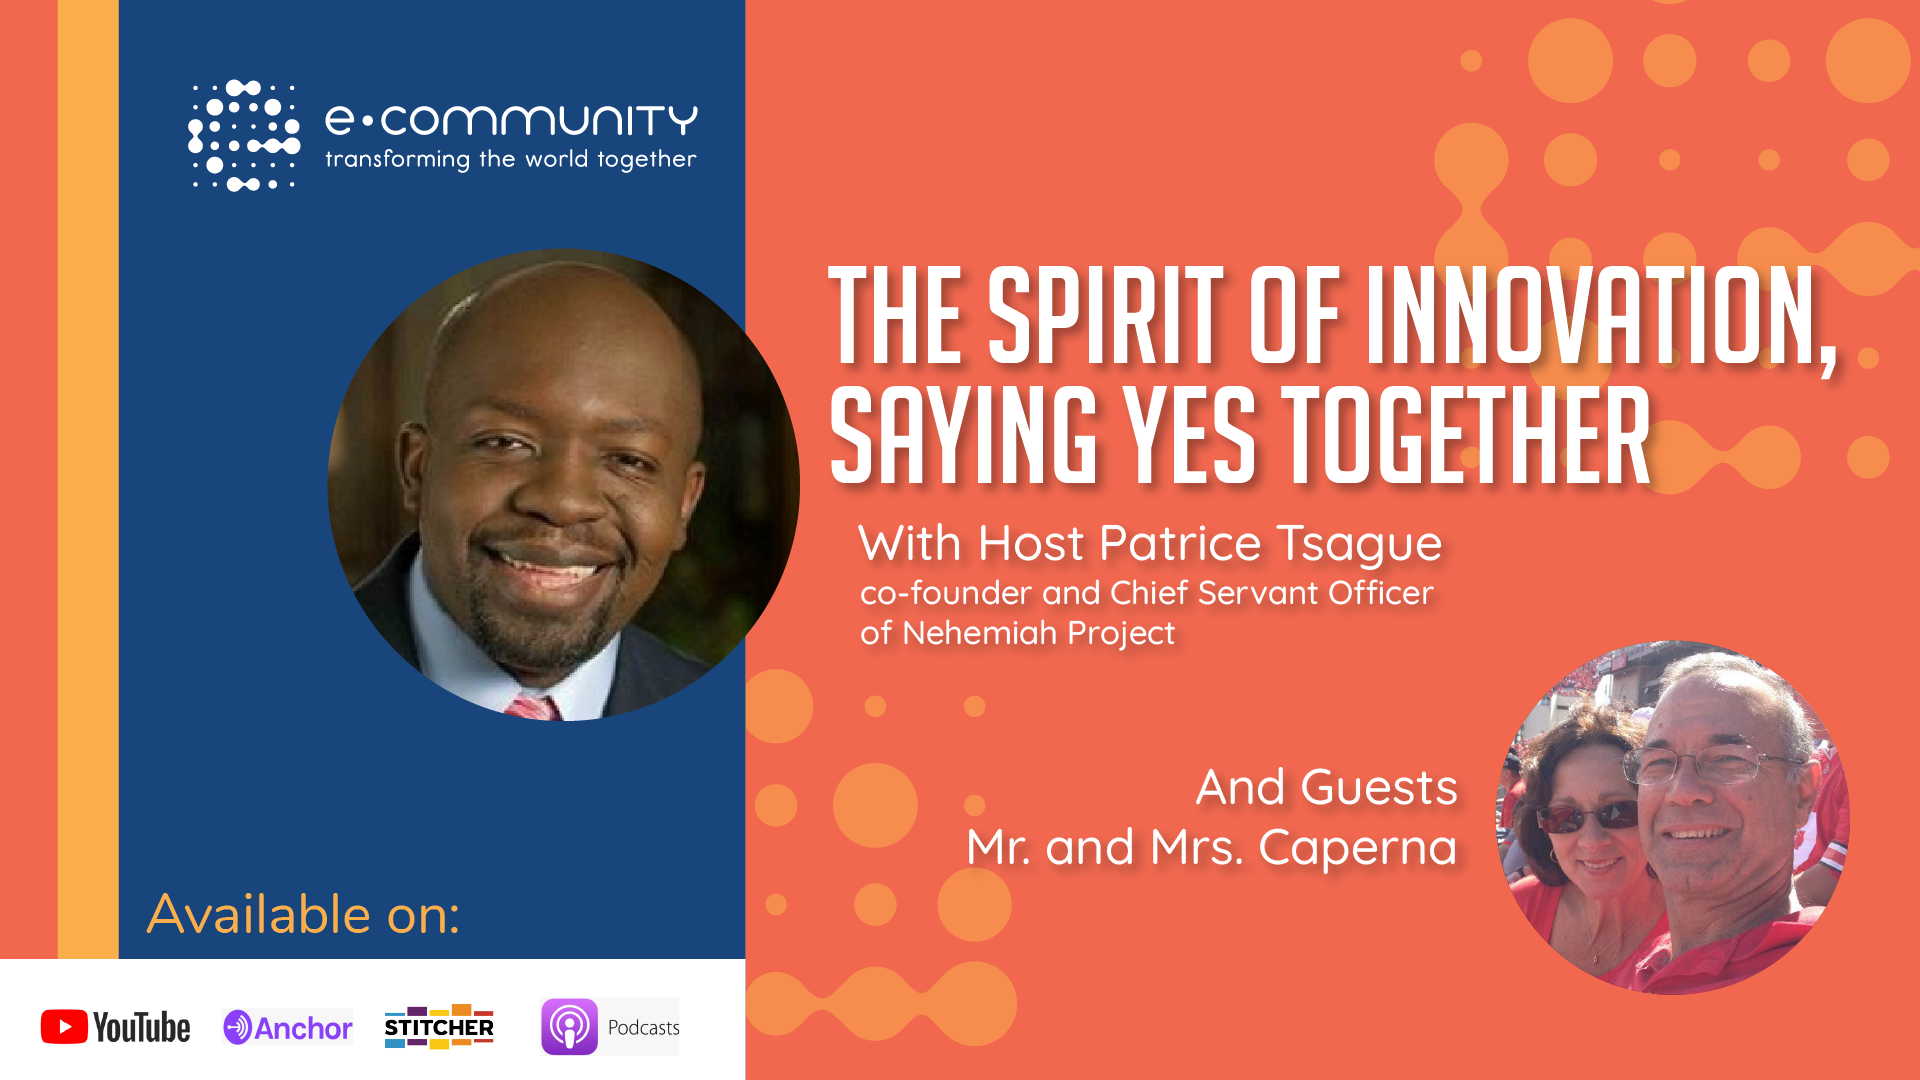 The Spirit of Innovation, Saying Yes Together